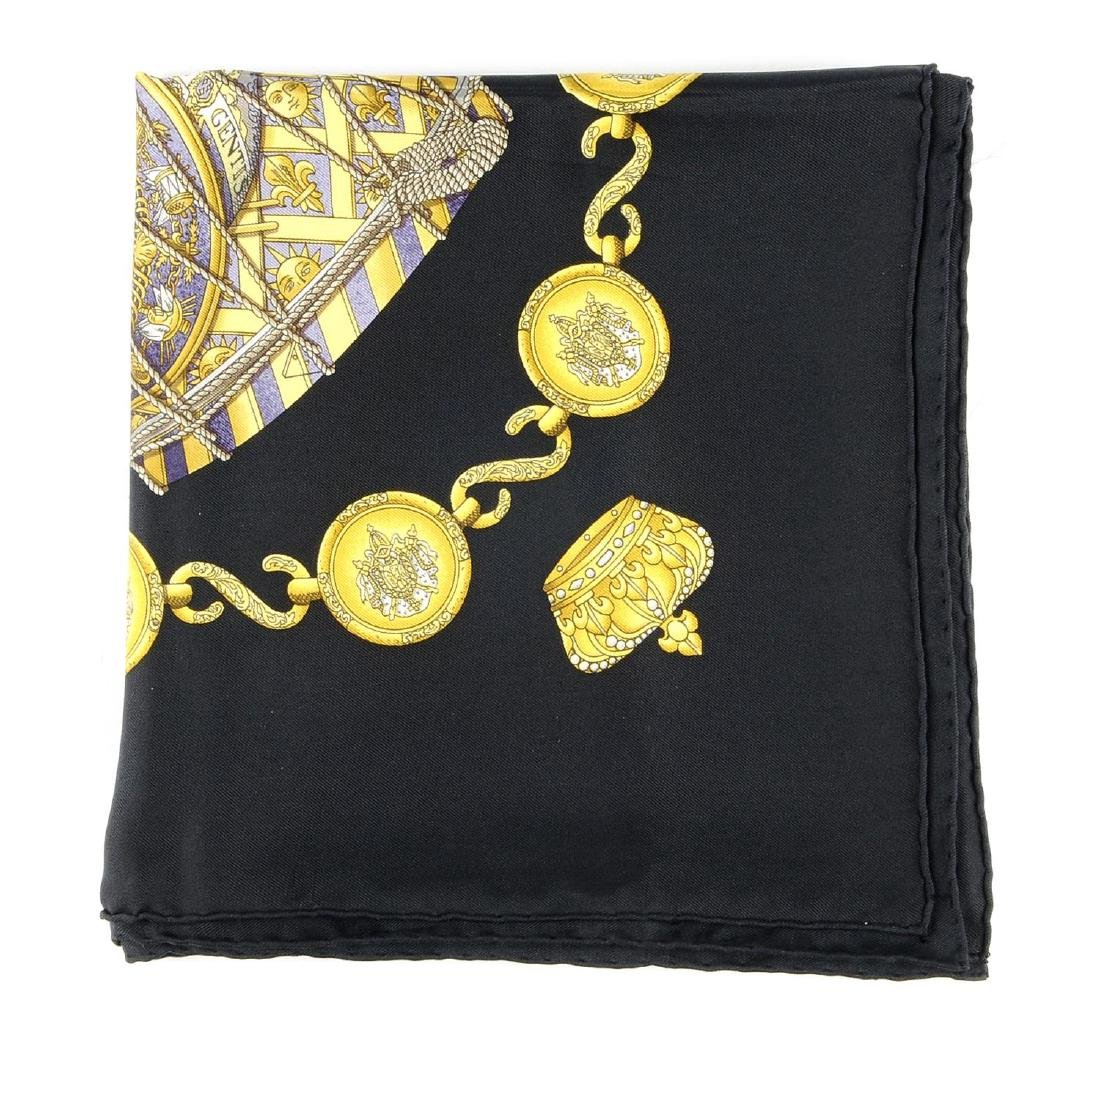 HERMÈS - a 'Les Tambours' scarf. Designed with gold